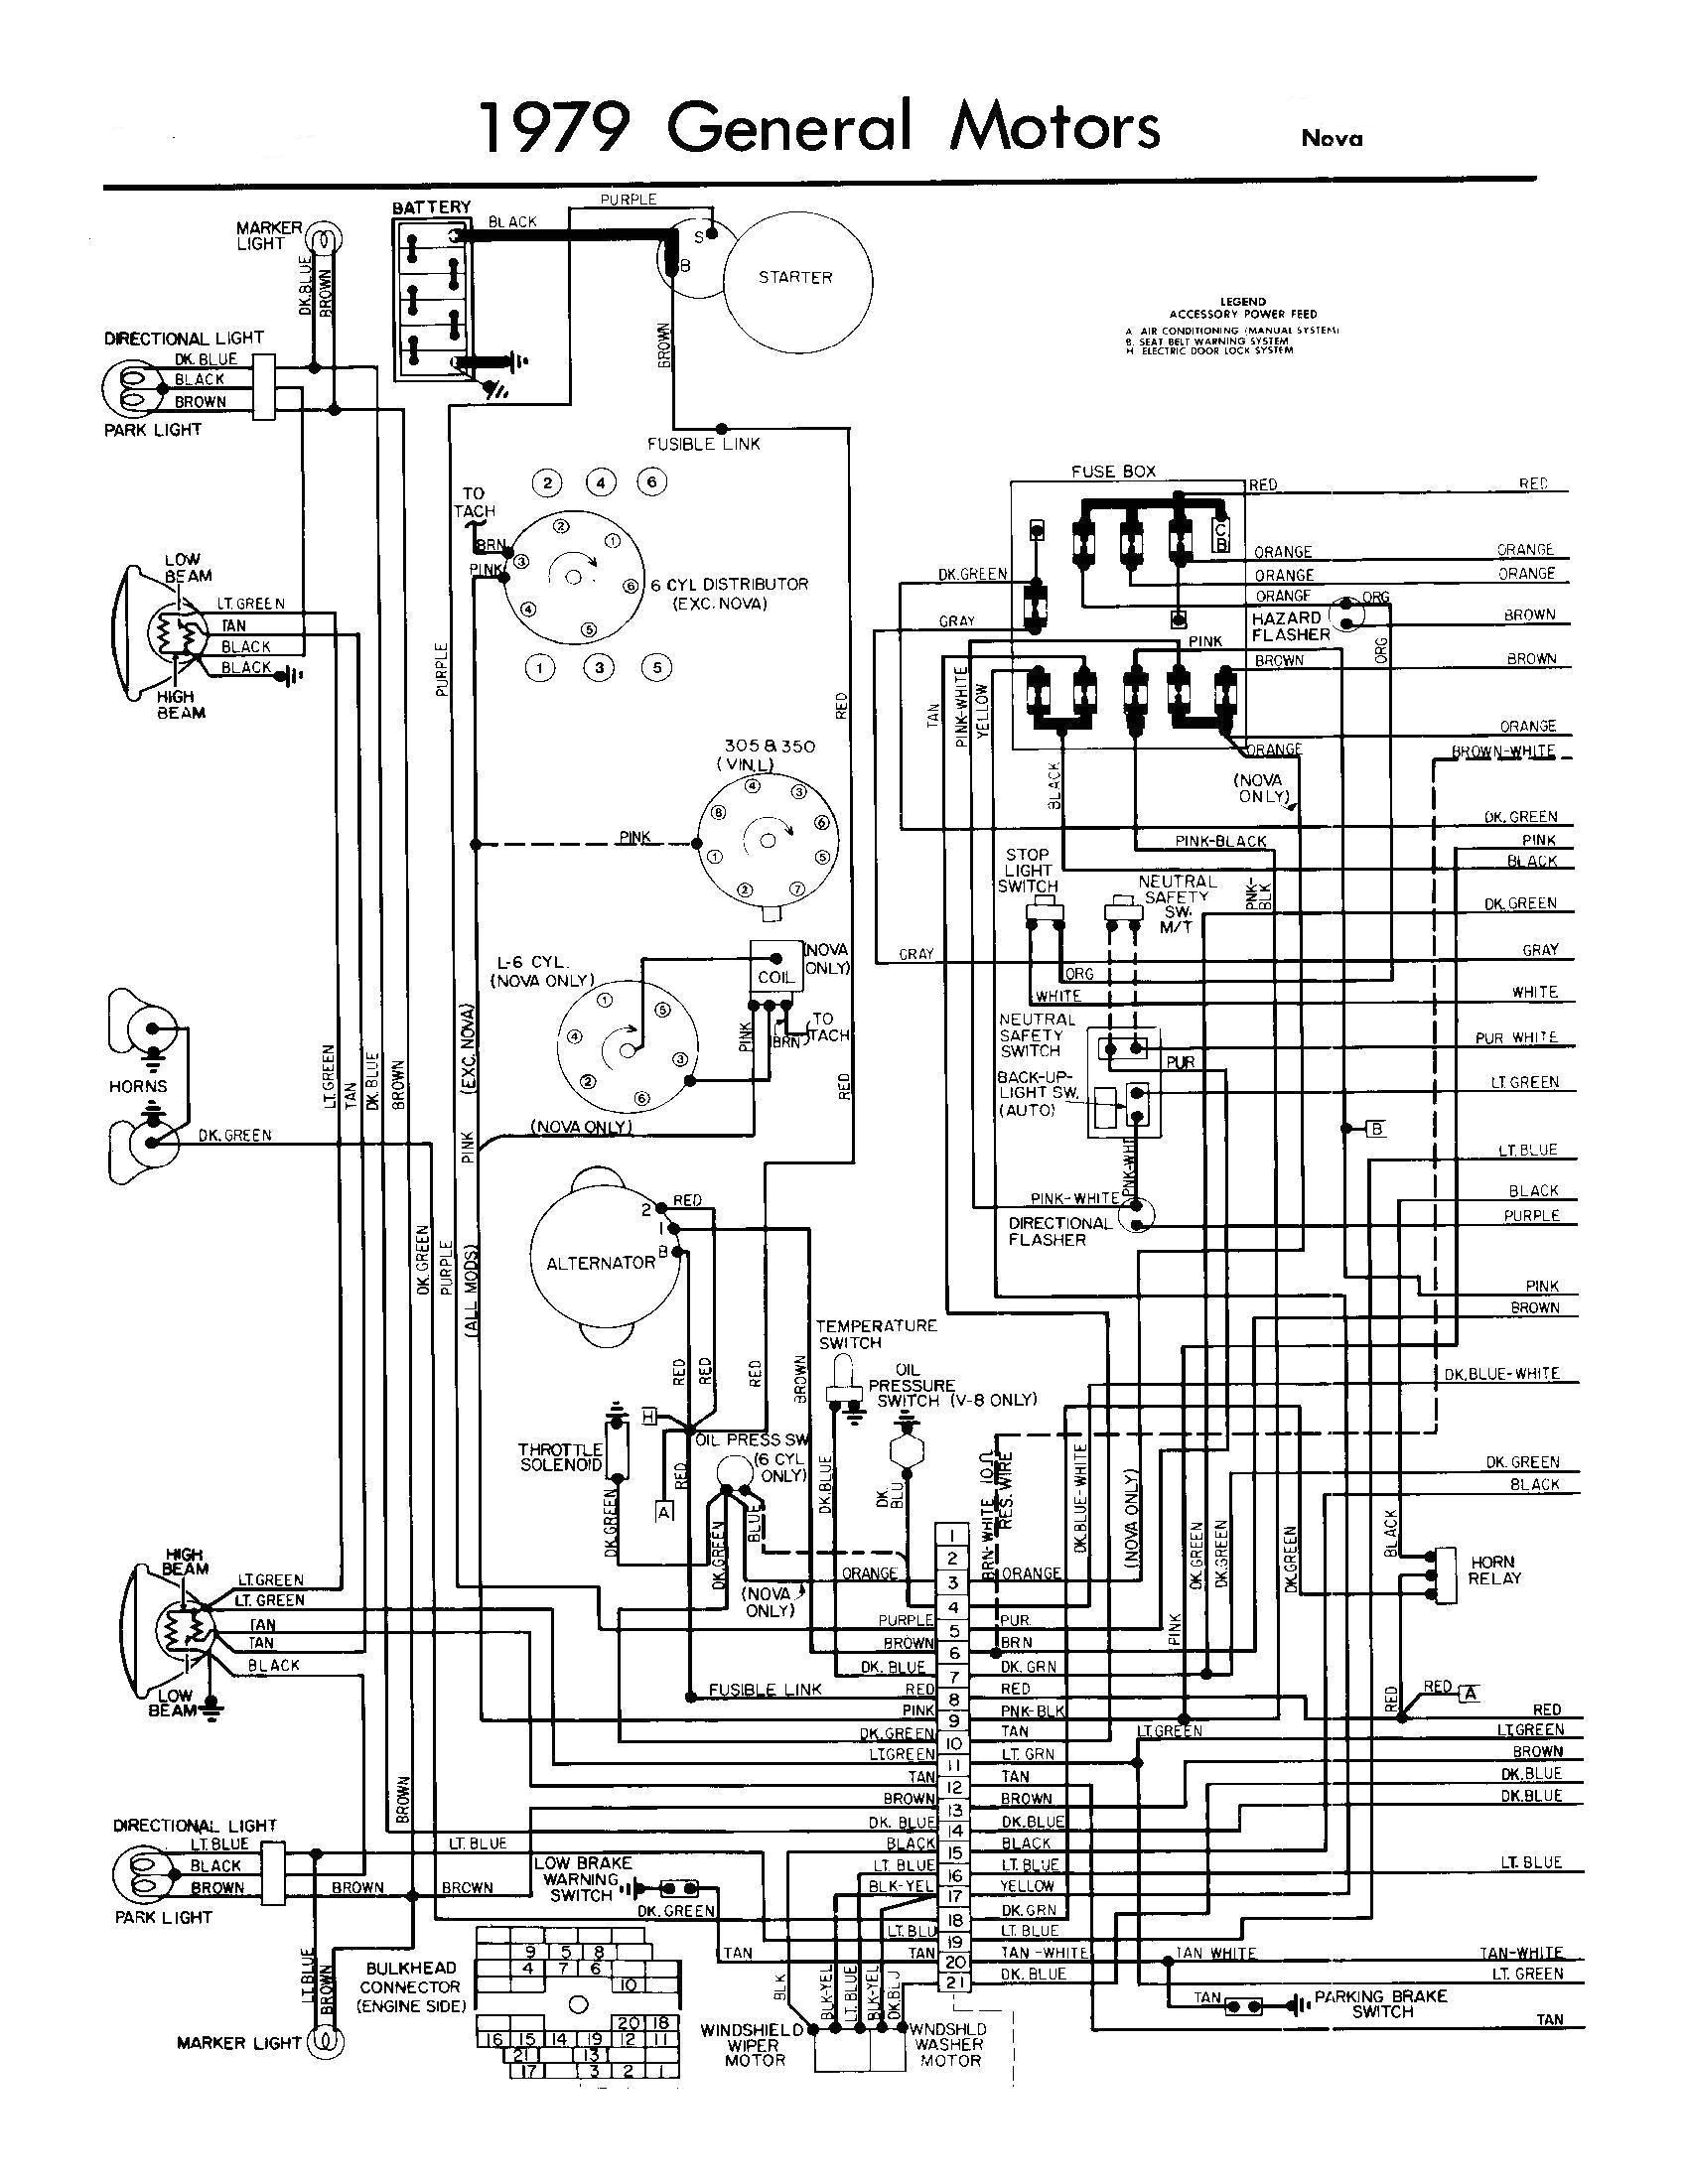 chevy truck fuse box diagram truck wiring diagram moreover 1981 chevy truck fuse box wiring of chevy truck fuse box diagram jpg